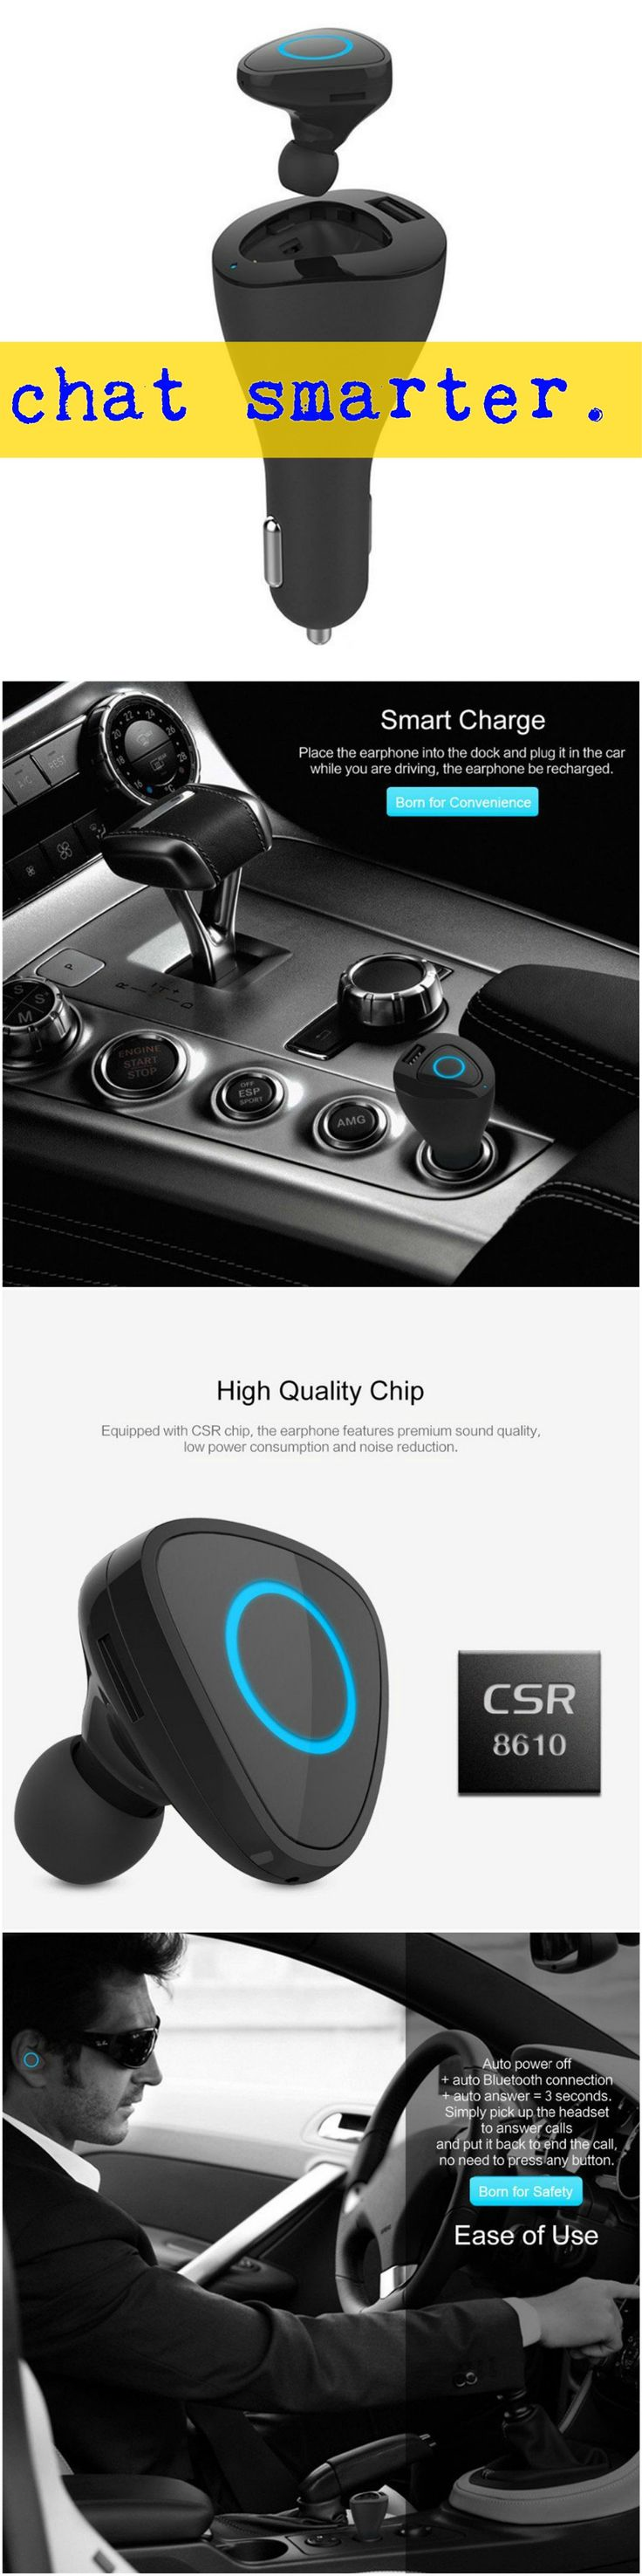 Bluetooth Wireless Noise Cancelling Headphones. Great for workout, gym and running without tangles! Great gift for Android, Windows 10, laptop, Macbook and Apple iPhone 7 users and those who are active in health and fitness   #Technology